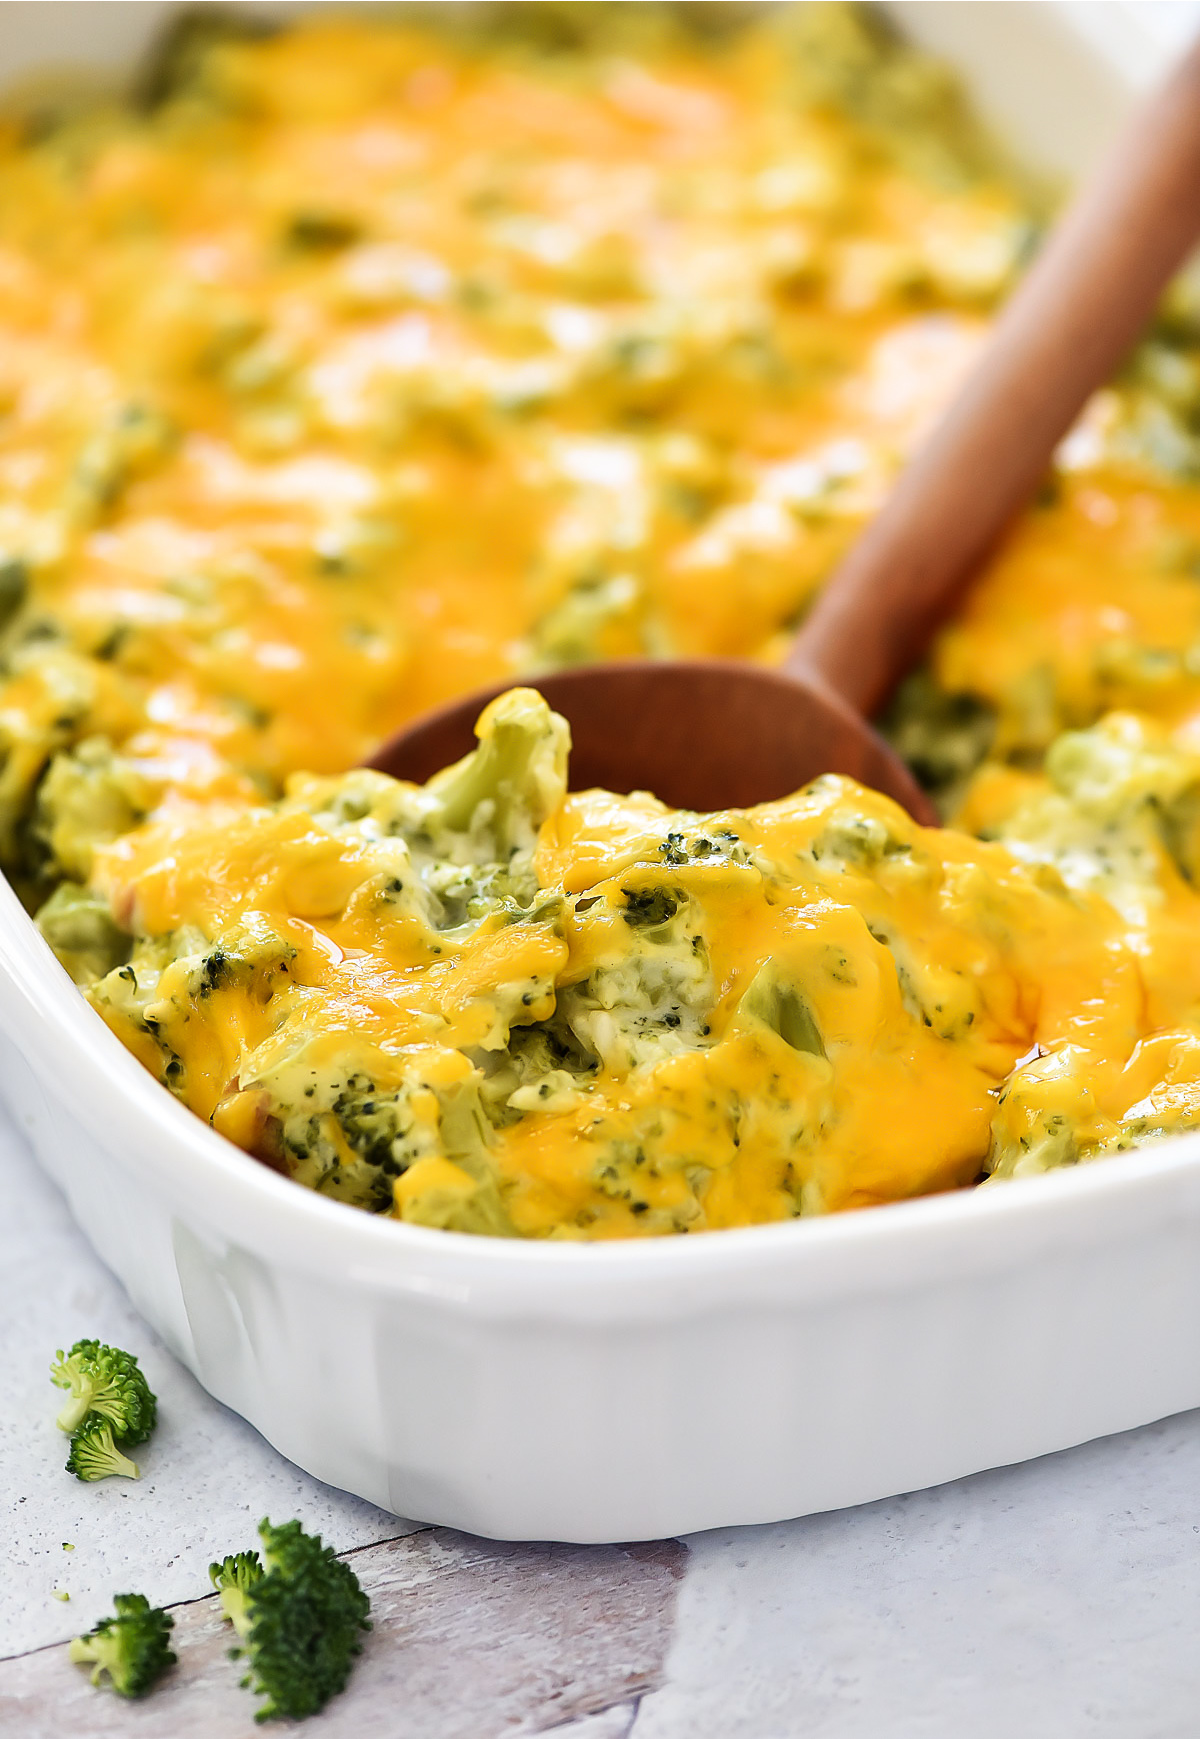 Cheddar cheese, broccoli florets, and homemade condensed cream of chicken soup all come together to create this creamy Broccoli Cheese Casserole.